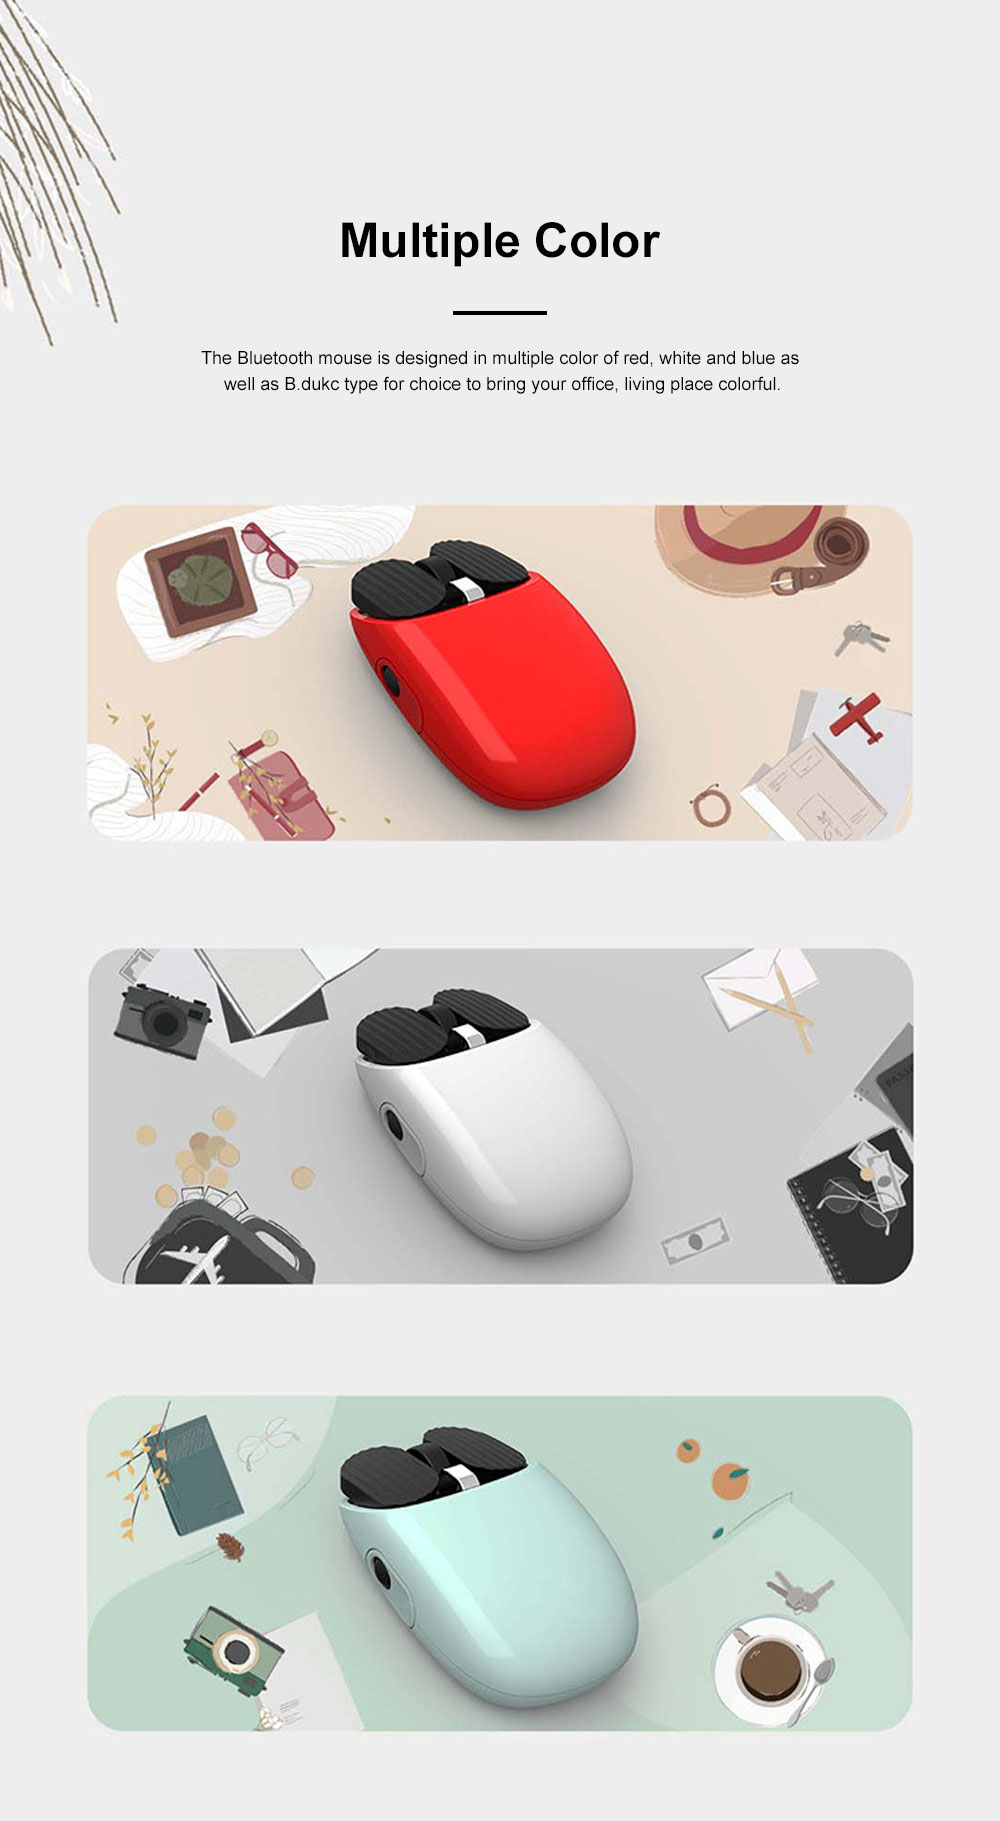 LOFREE New Arrival Bluetooth Mouse for Office Gaming Use Wireless Nordic Bluetooth Chip Optical Mouse Dual Connection Mode Mouse 11